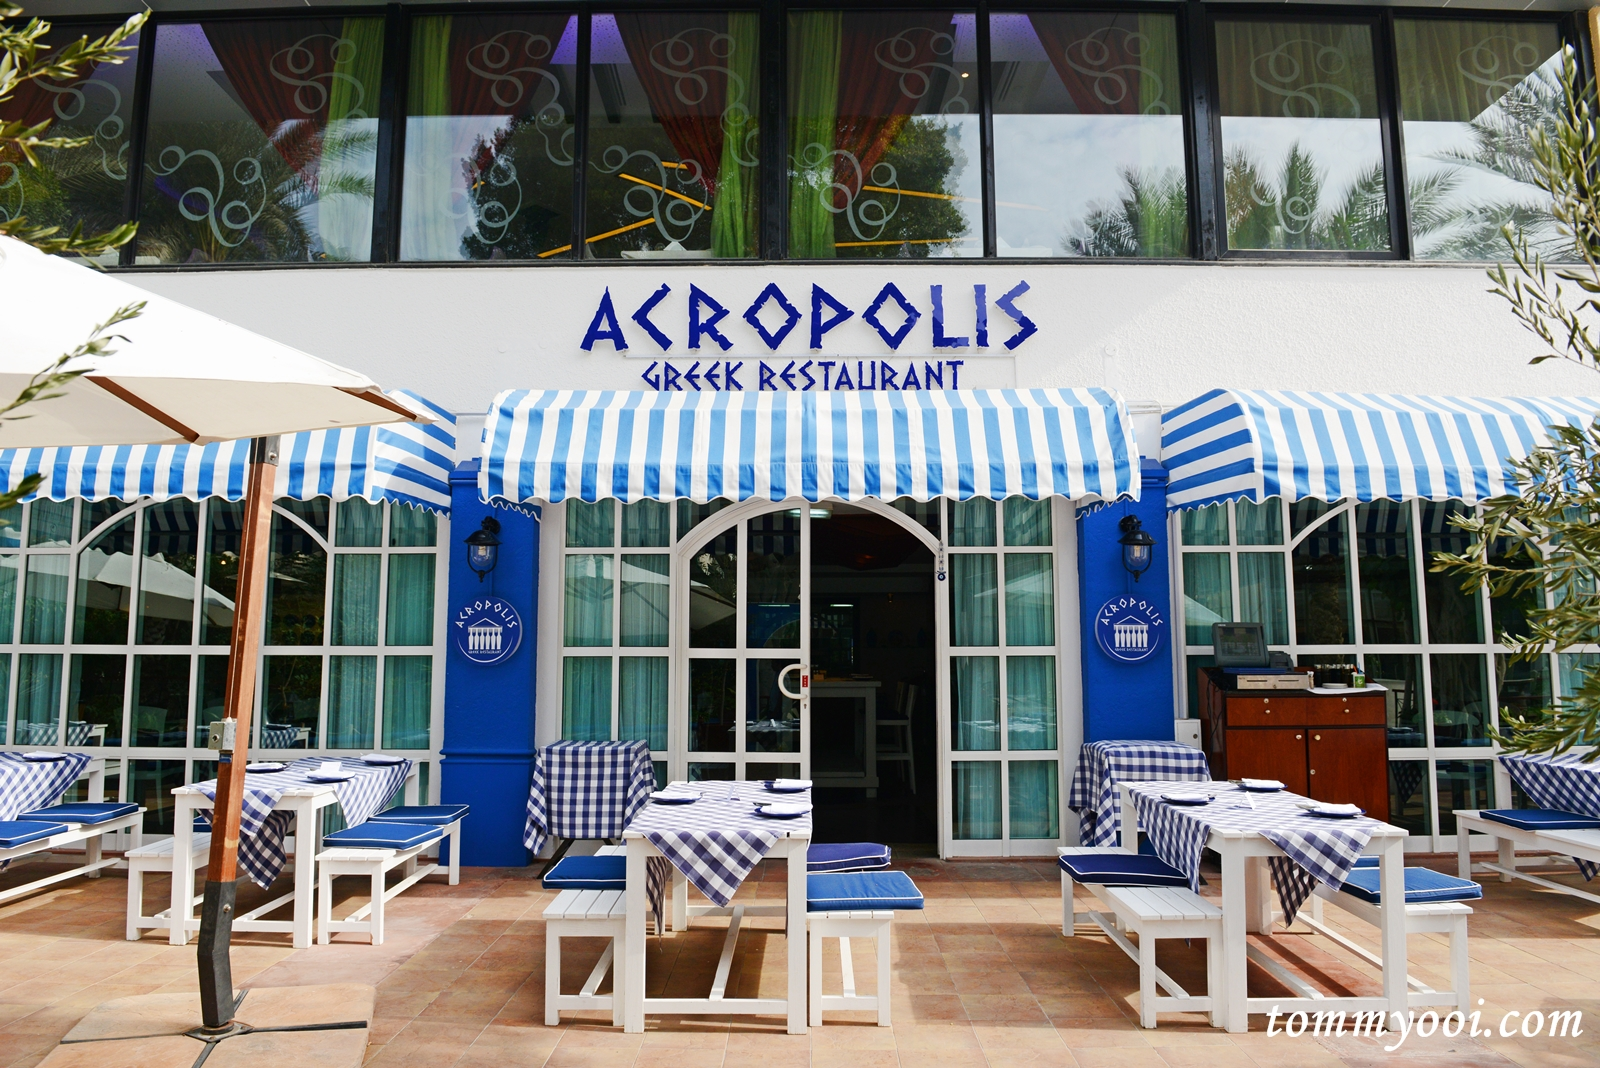 Acropolis authentic greek cuisine in abu dhabi tommy for Abu authentic cuisine taipei